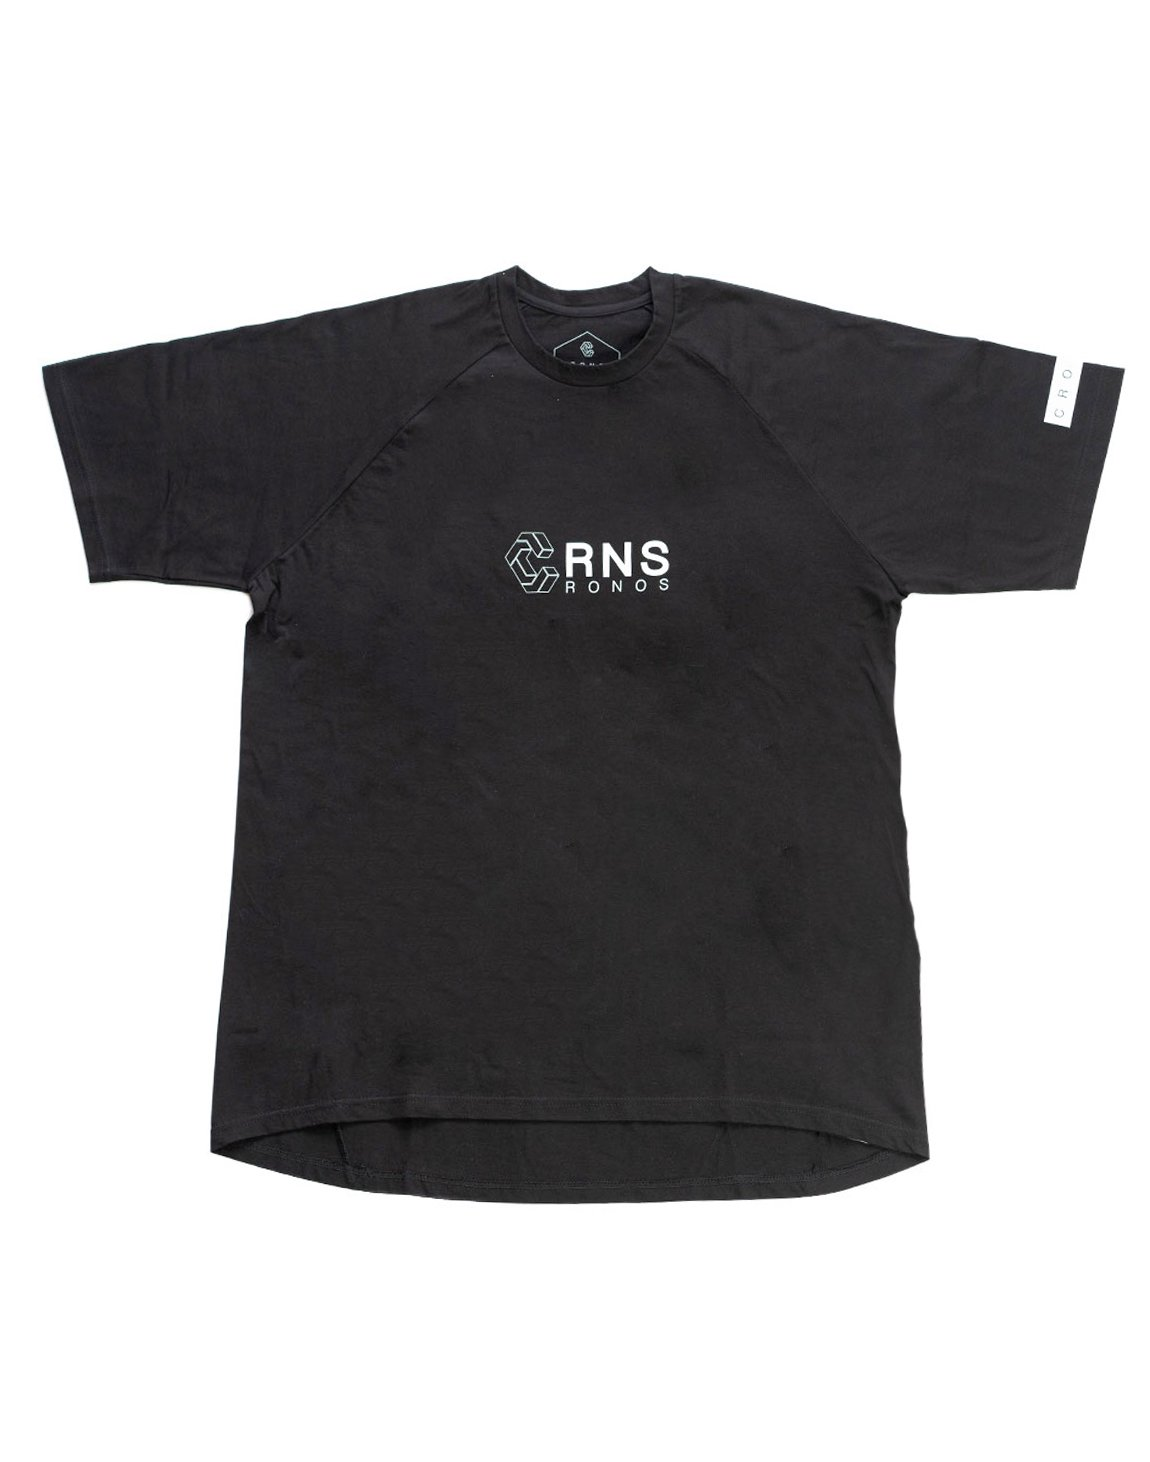 <img class='new_mark_img1' src='https://img.shop-pro.jp/img/new/icons1.gif' style='border:none;display:inline;margin:0px;padding:0px;width:auto;' />CRNS HEM ROUNDNESS T-SHIRTS 【BLACK】